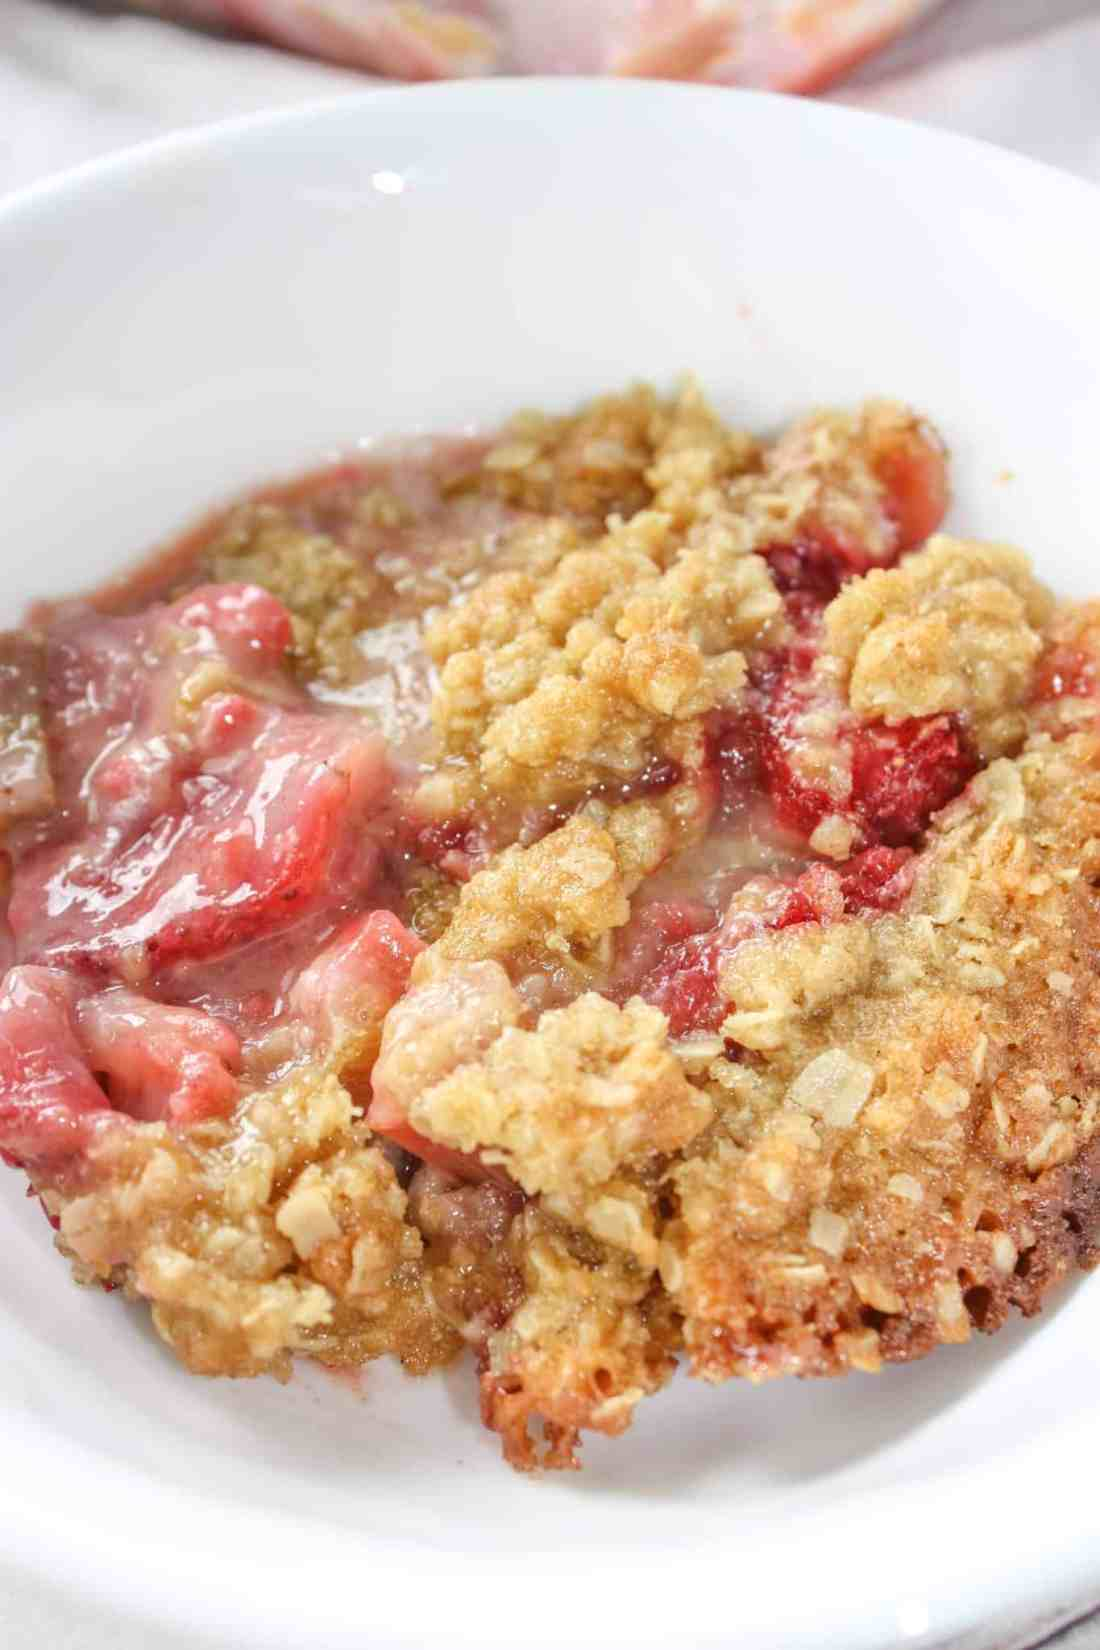 Gluten Free Strawberry Rhubarb Crisp is a wonderful blend of flavours and textures. This seasonal dessert will delight the taste buds of young and old alike.